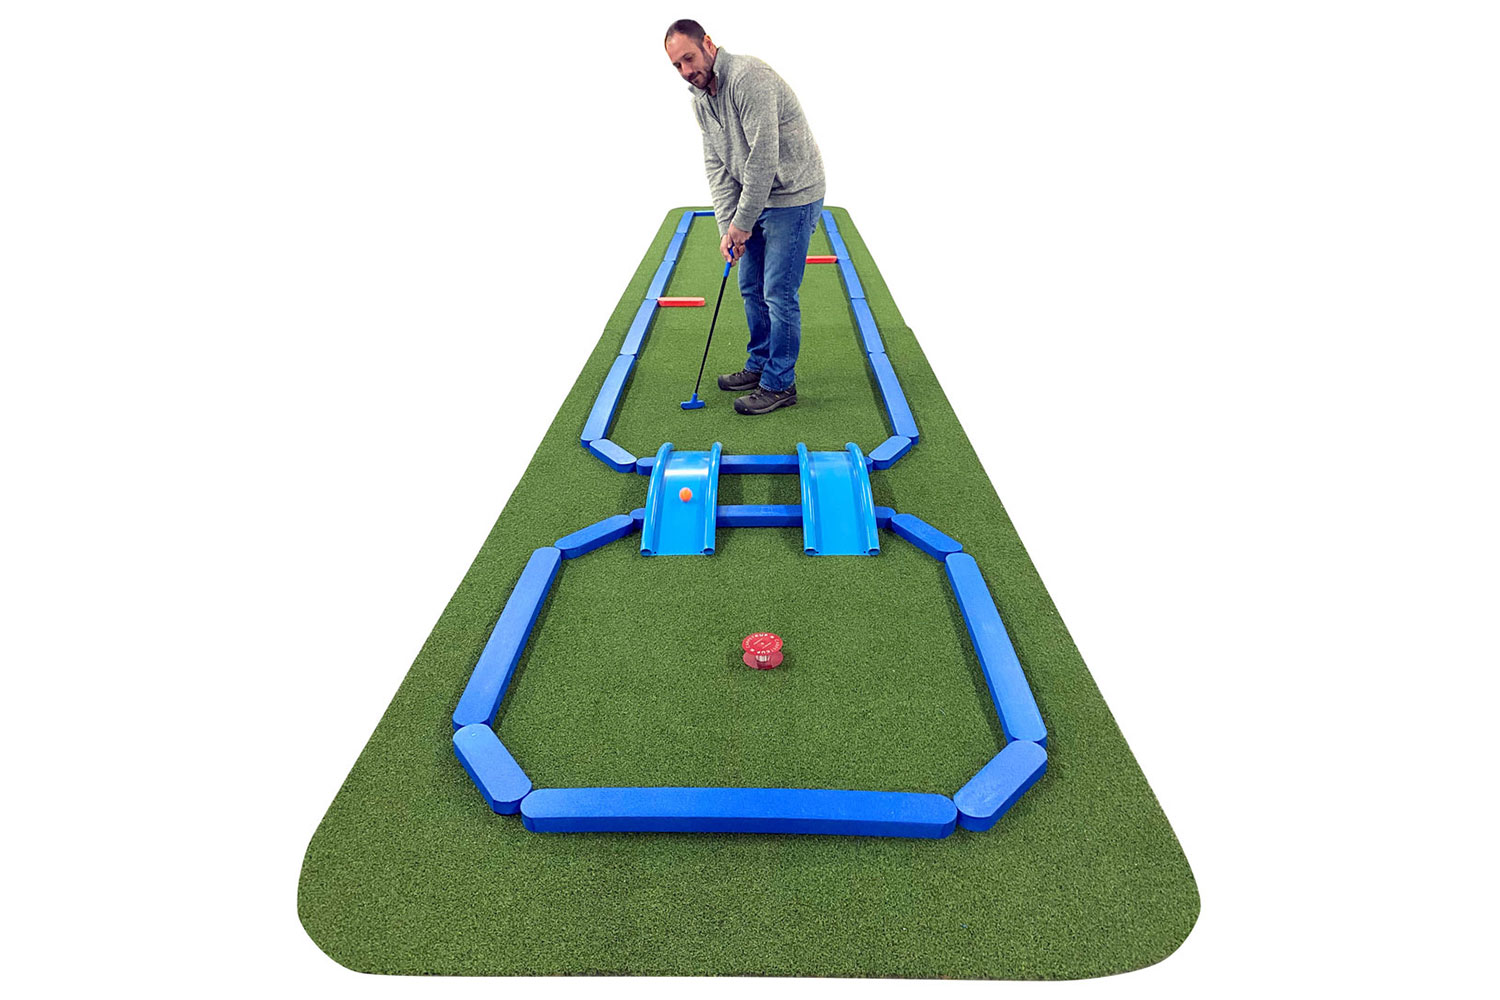 Putting on an AmericanPie™ Mini Golf hole. The faux wood edge system is pinned together with slide-in connector brackets.